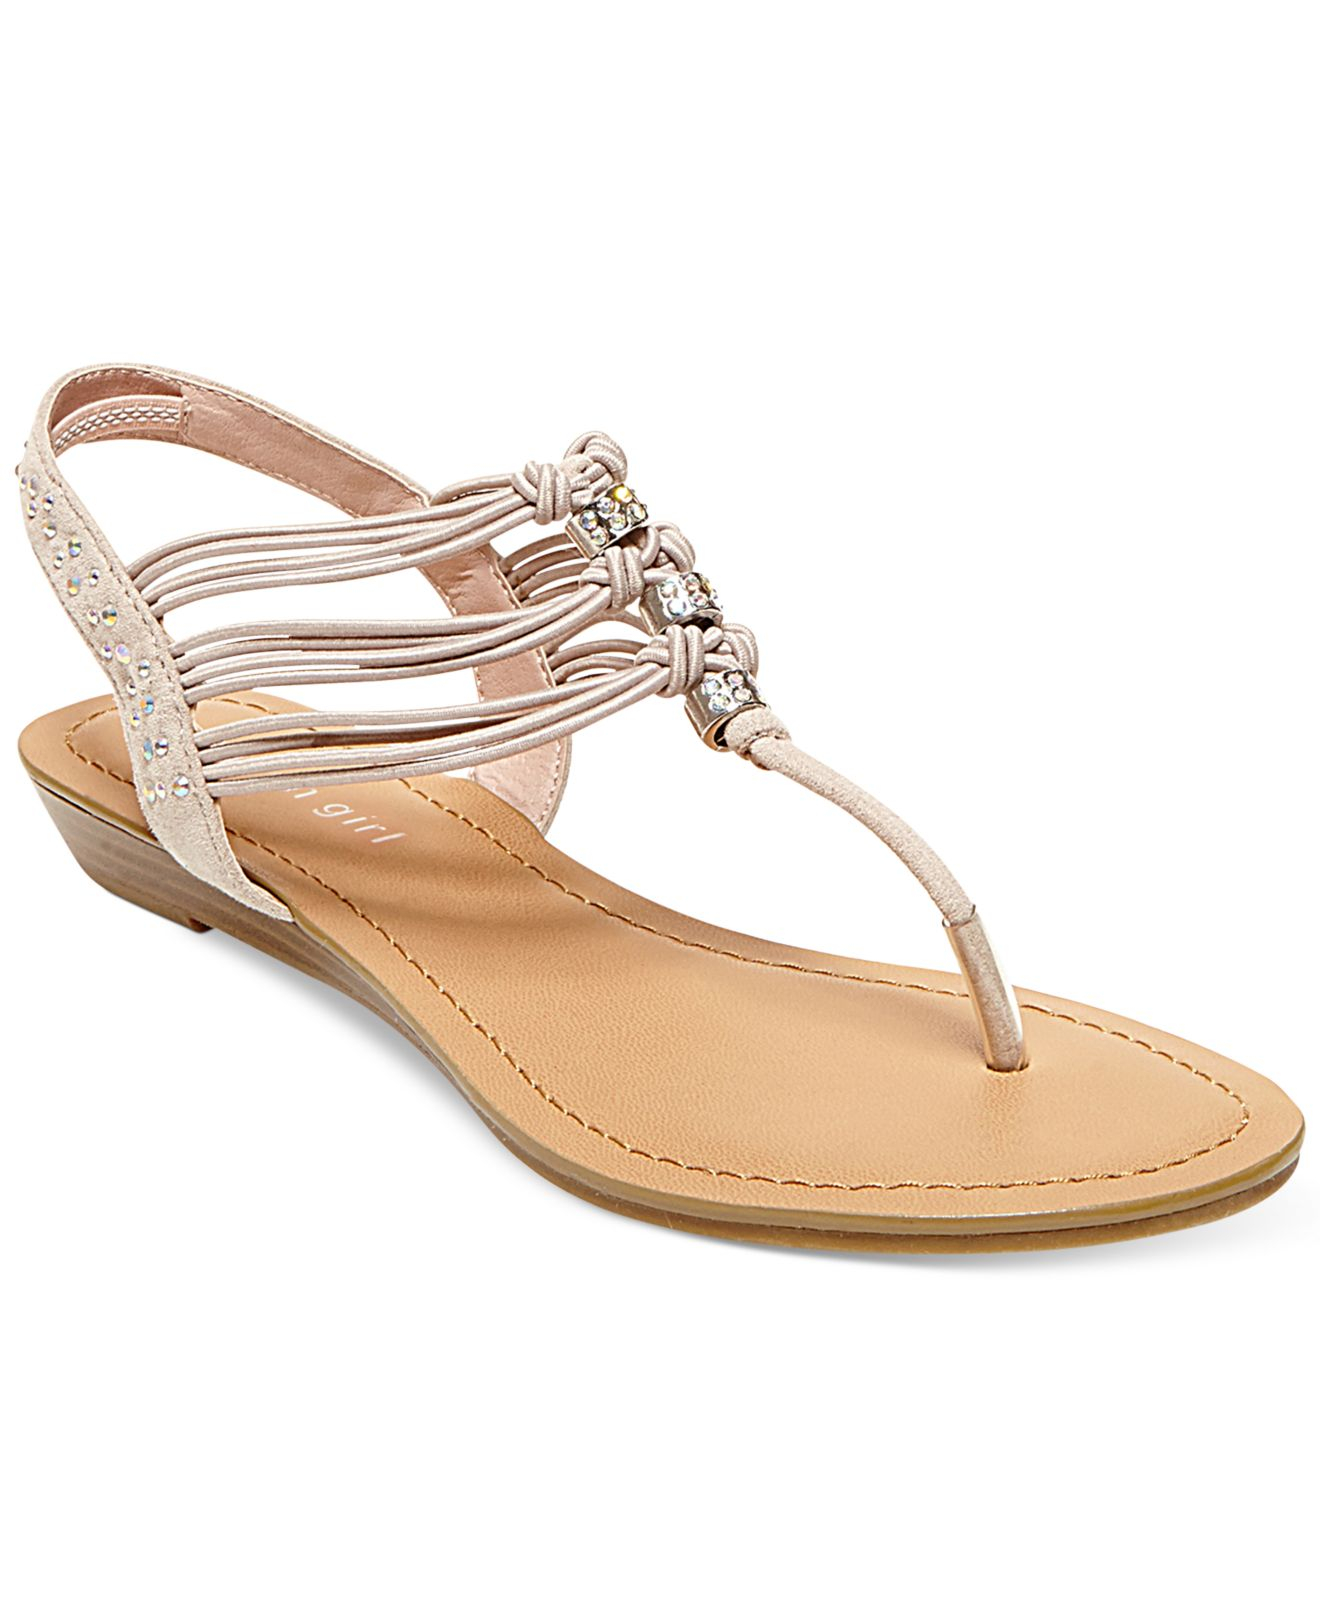 Madden Girl Thrill T-Strap Flat Thong Sandals In Pink  Lyst-6868